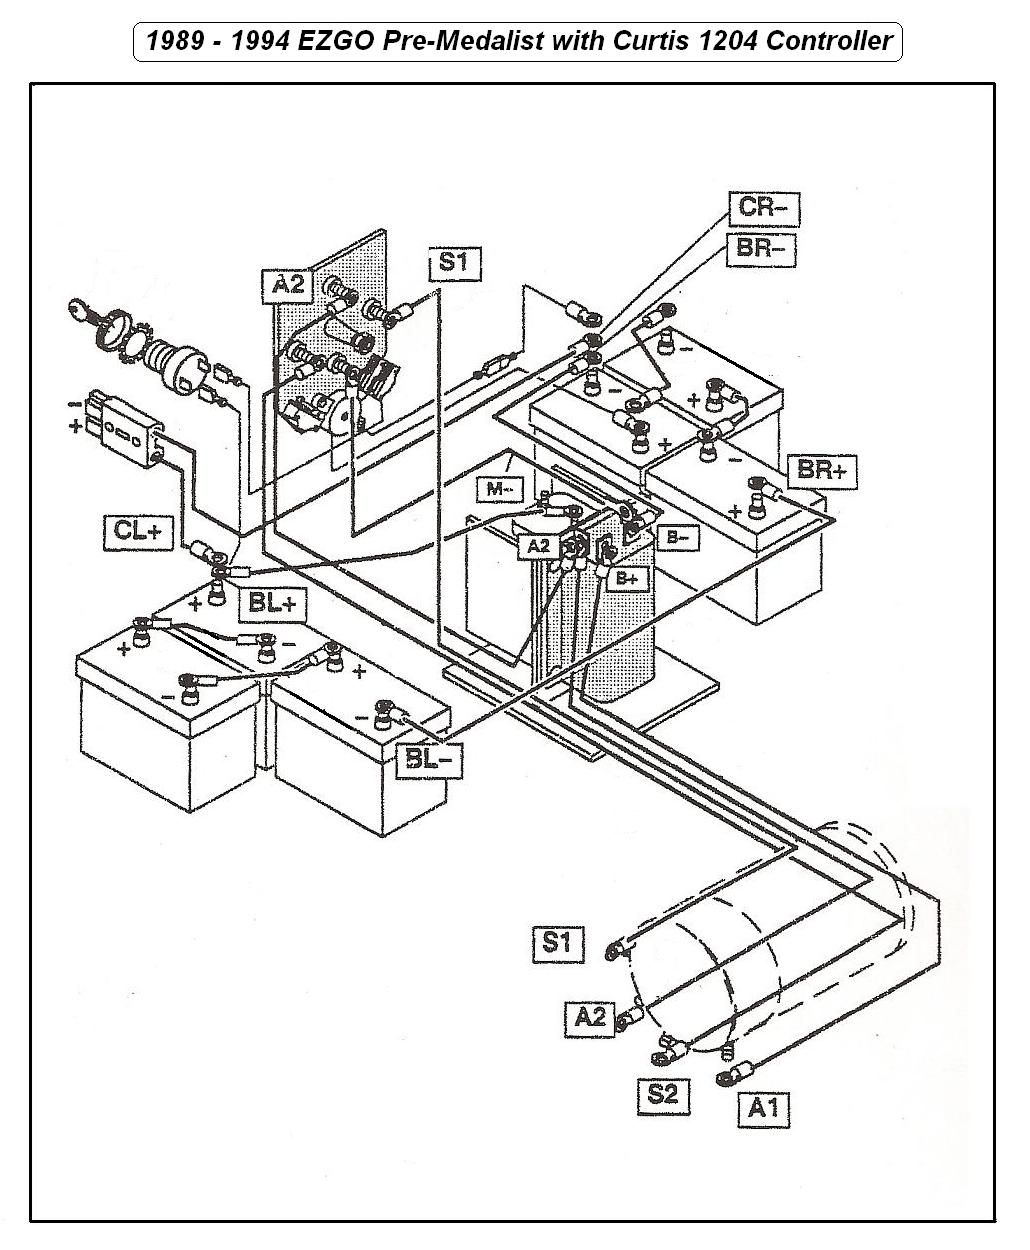 A89_94EZ_Wiring 1989 ez go wiring diagram 1989 eldorado wiring diagram \u2022 wiring 1994 ezgo gas golf cart wiring diagram at n-0.co